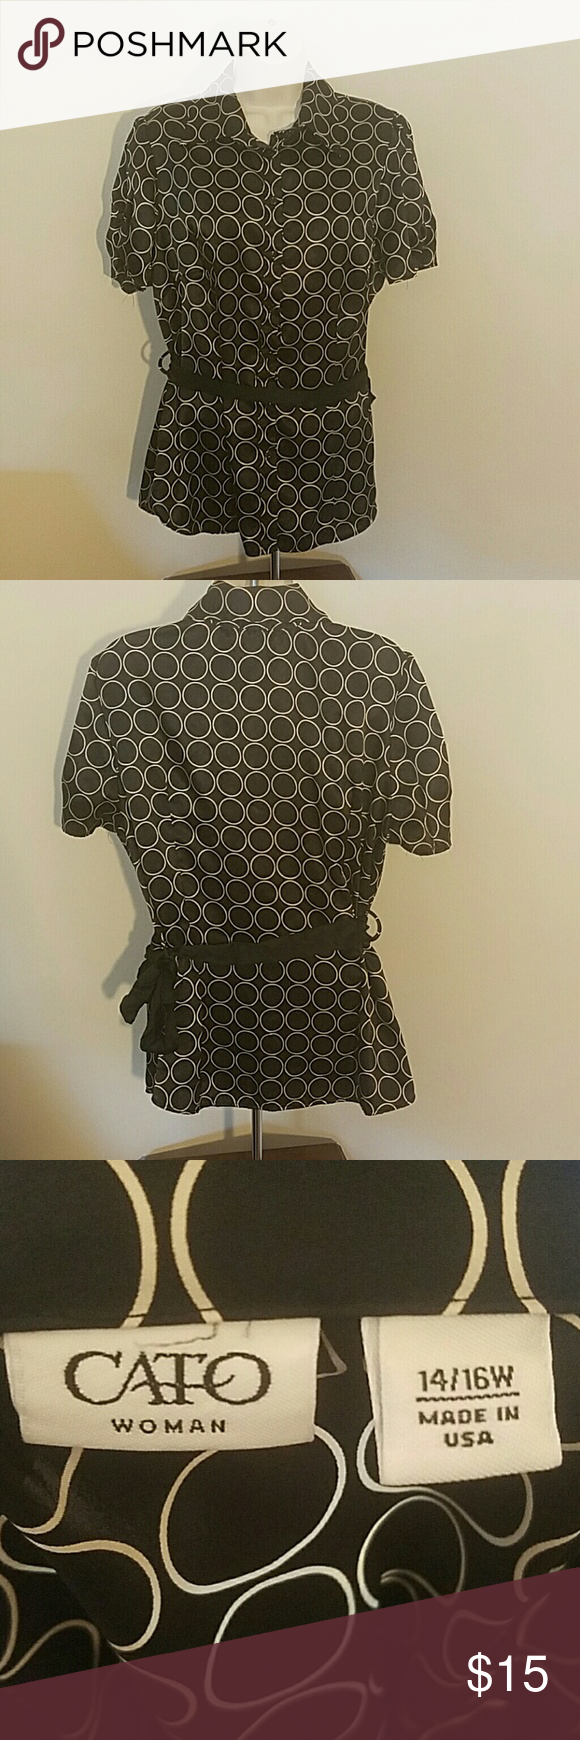 Black and Gold Blouse by Cato Size 14/16. Great condition. No tears, stains or snags. 100% polyester. Message me with any questions Cato Tops Button Down Shirts